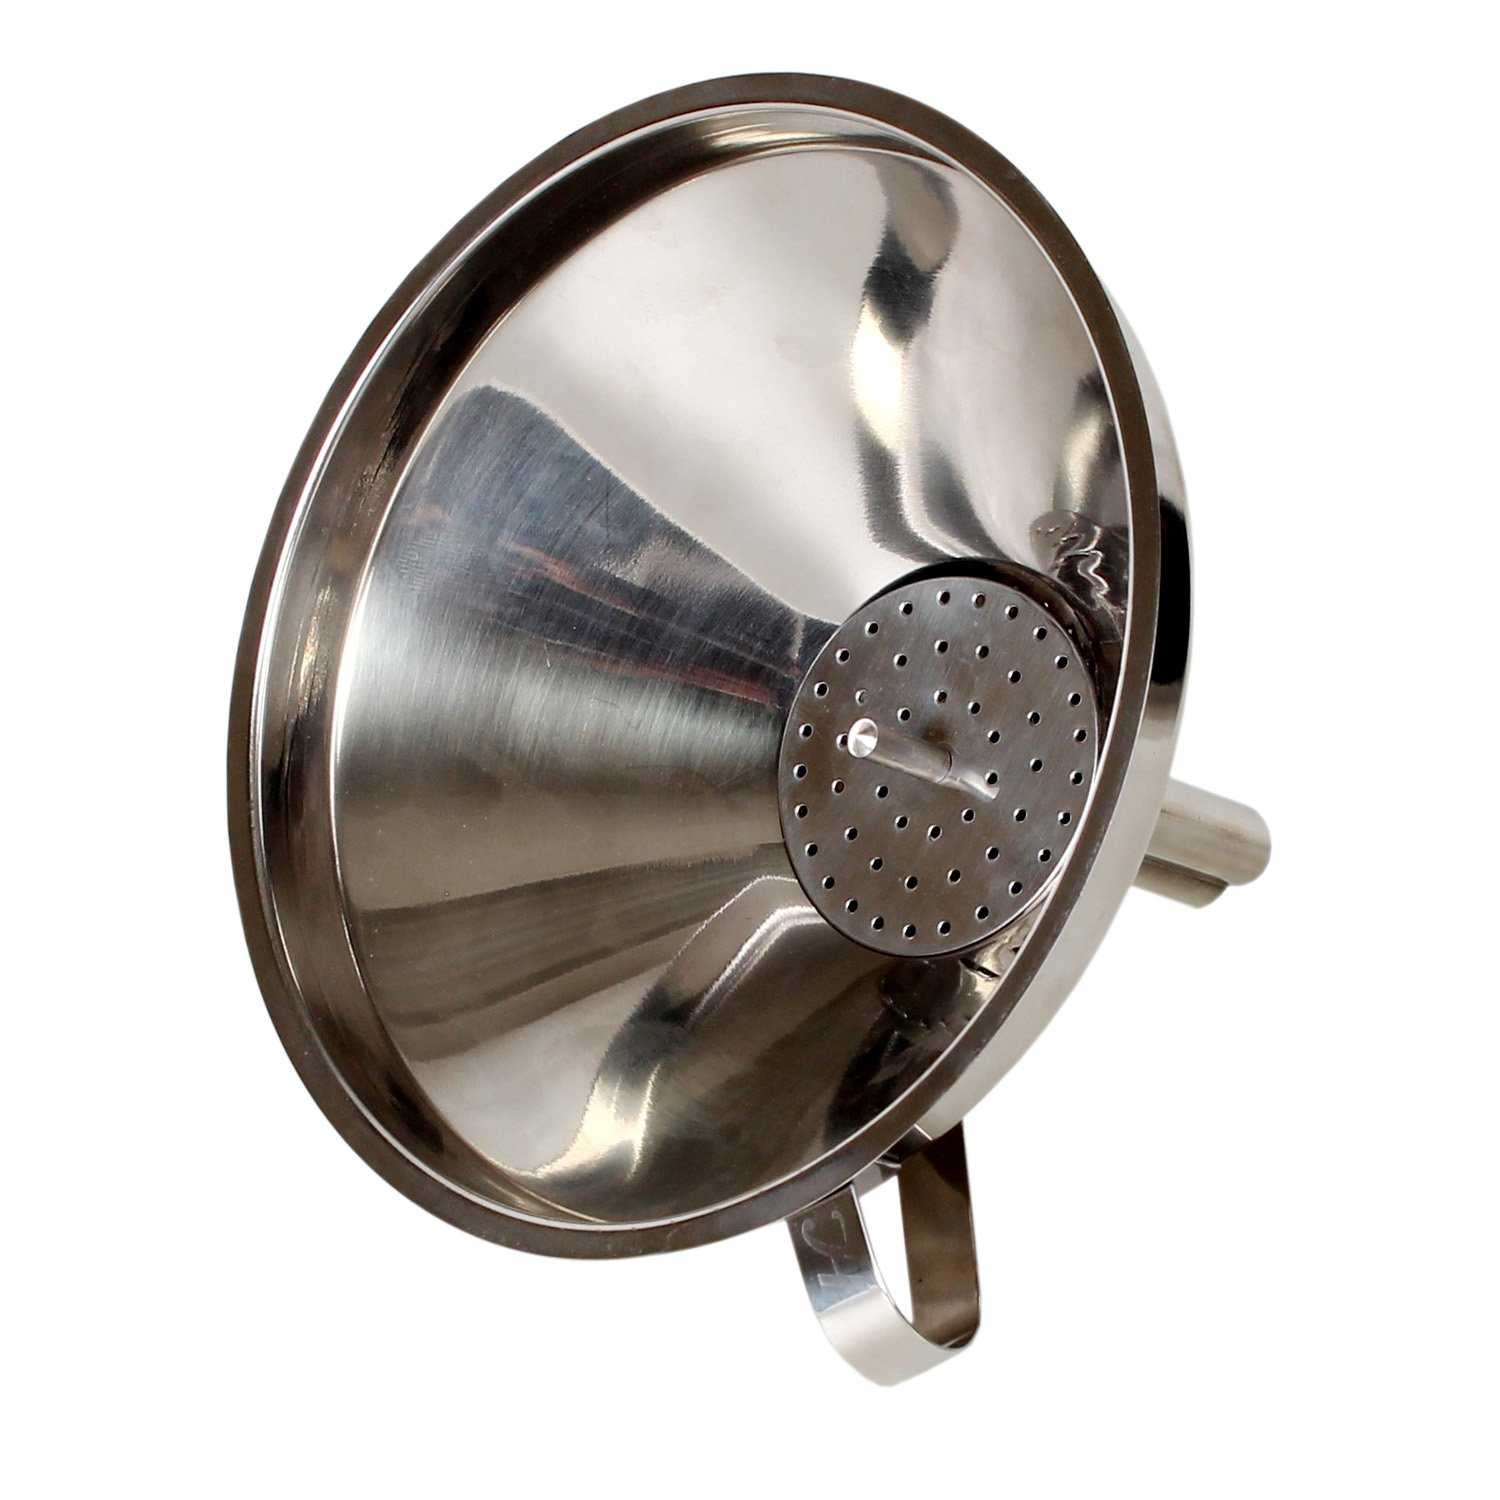 6 6 Excellante 849851007864 Stainless Steel Funnel with Removable Strainer